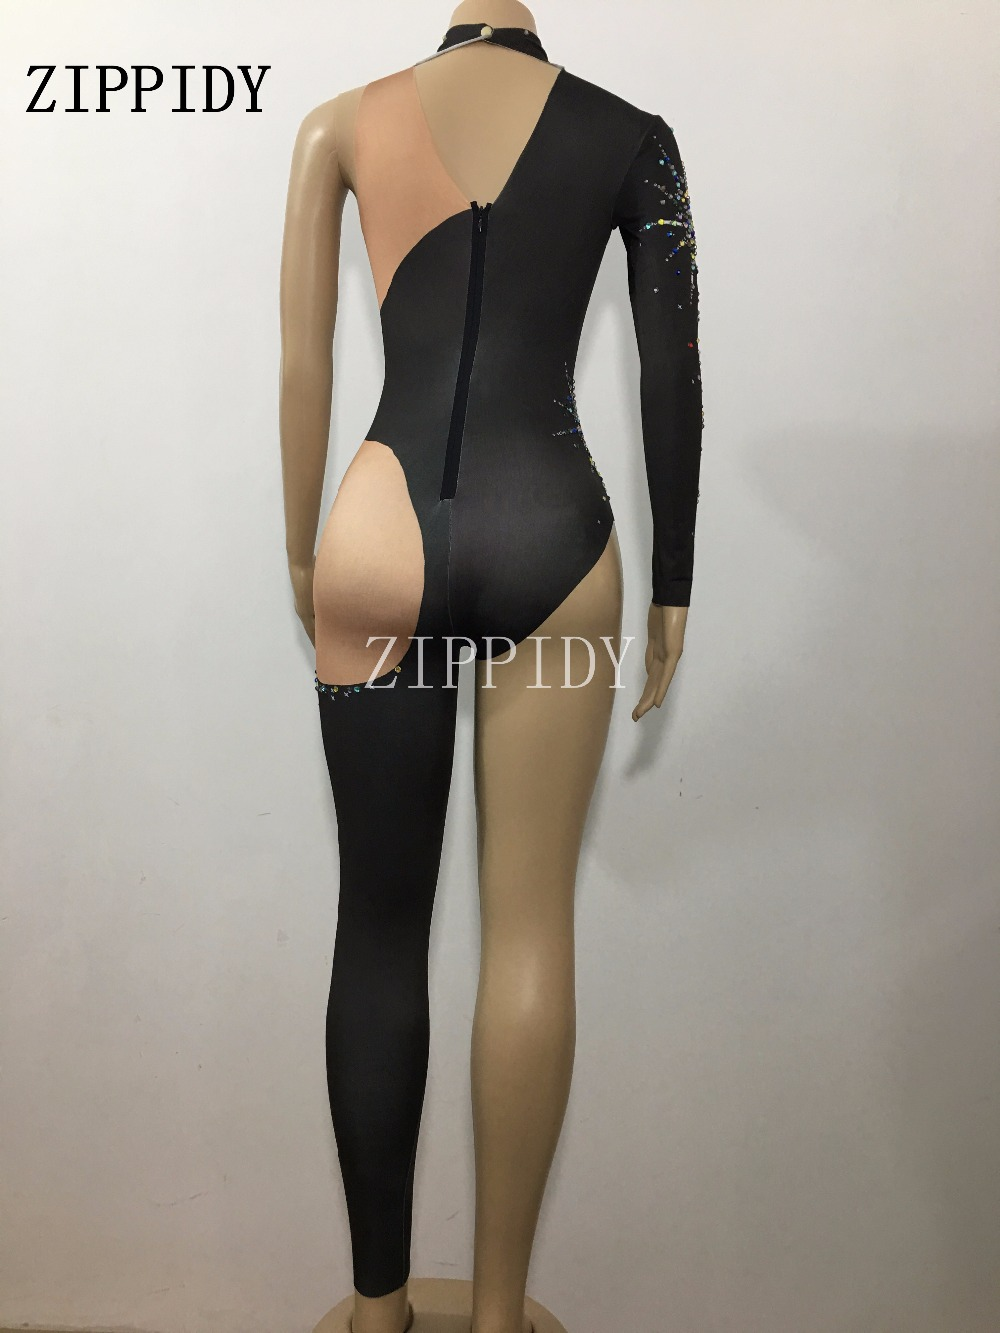 Black Fireworks Sparkly Single Leg Jumpsuit Female Singer Dancer Costume One-piece Bodysuit Nightclub Oufit Party Leggings